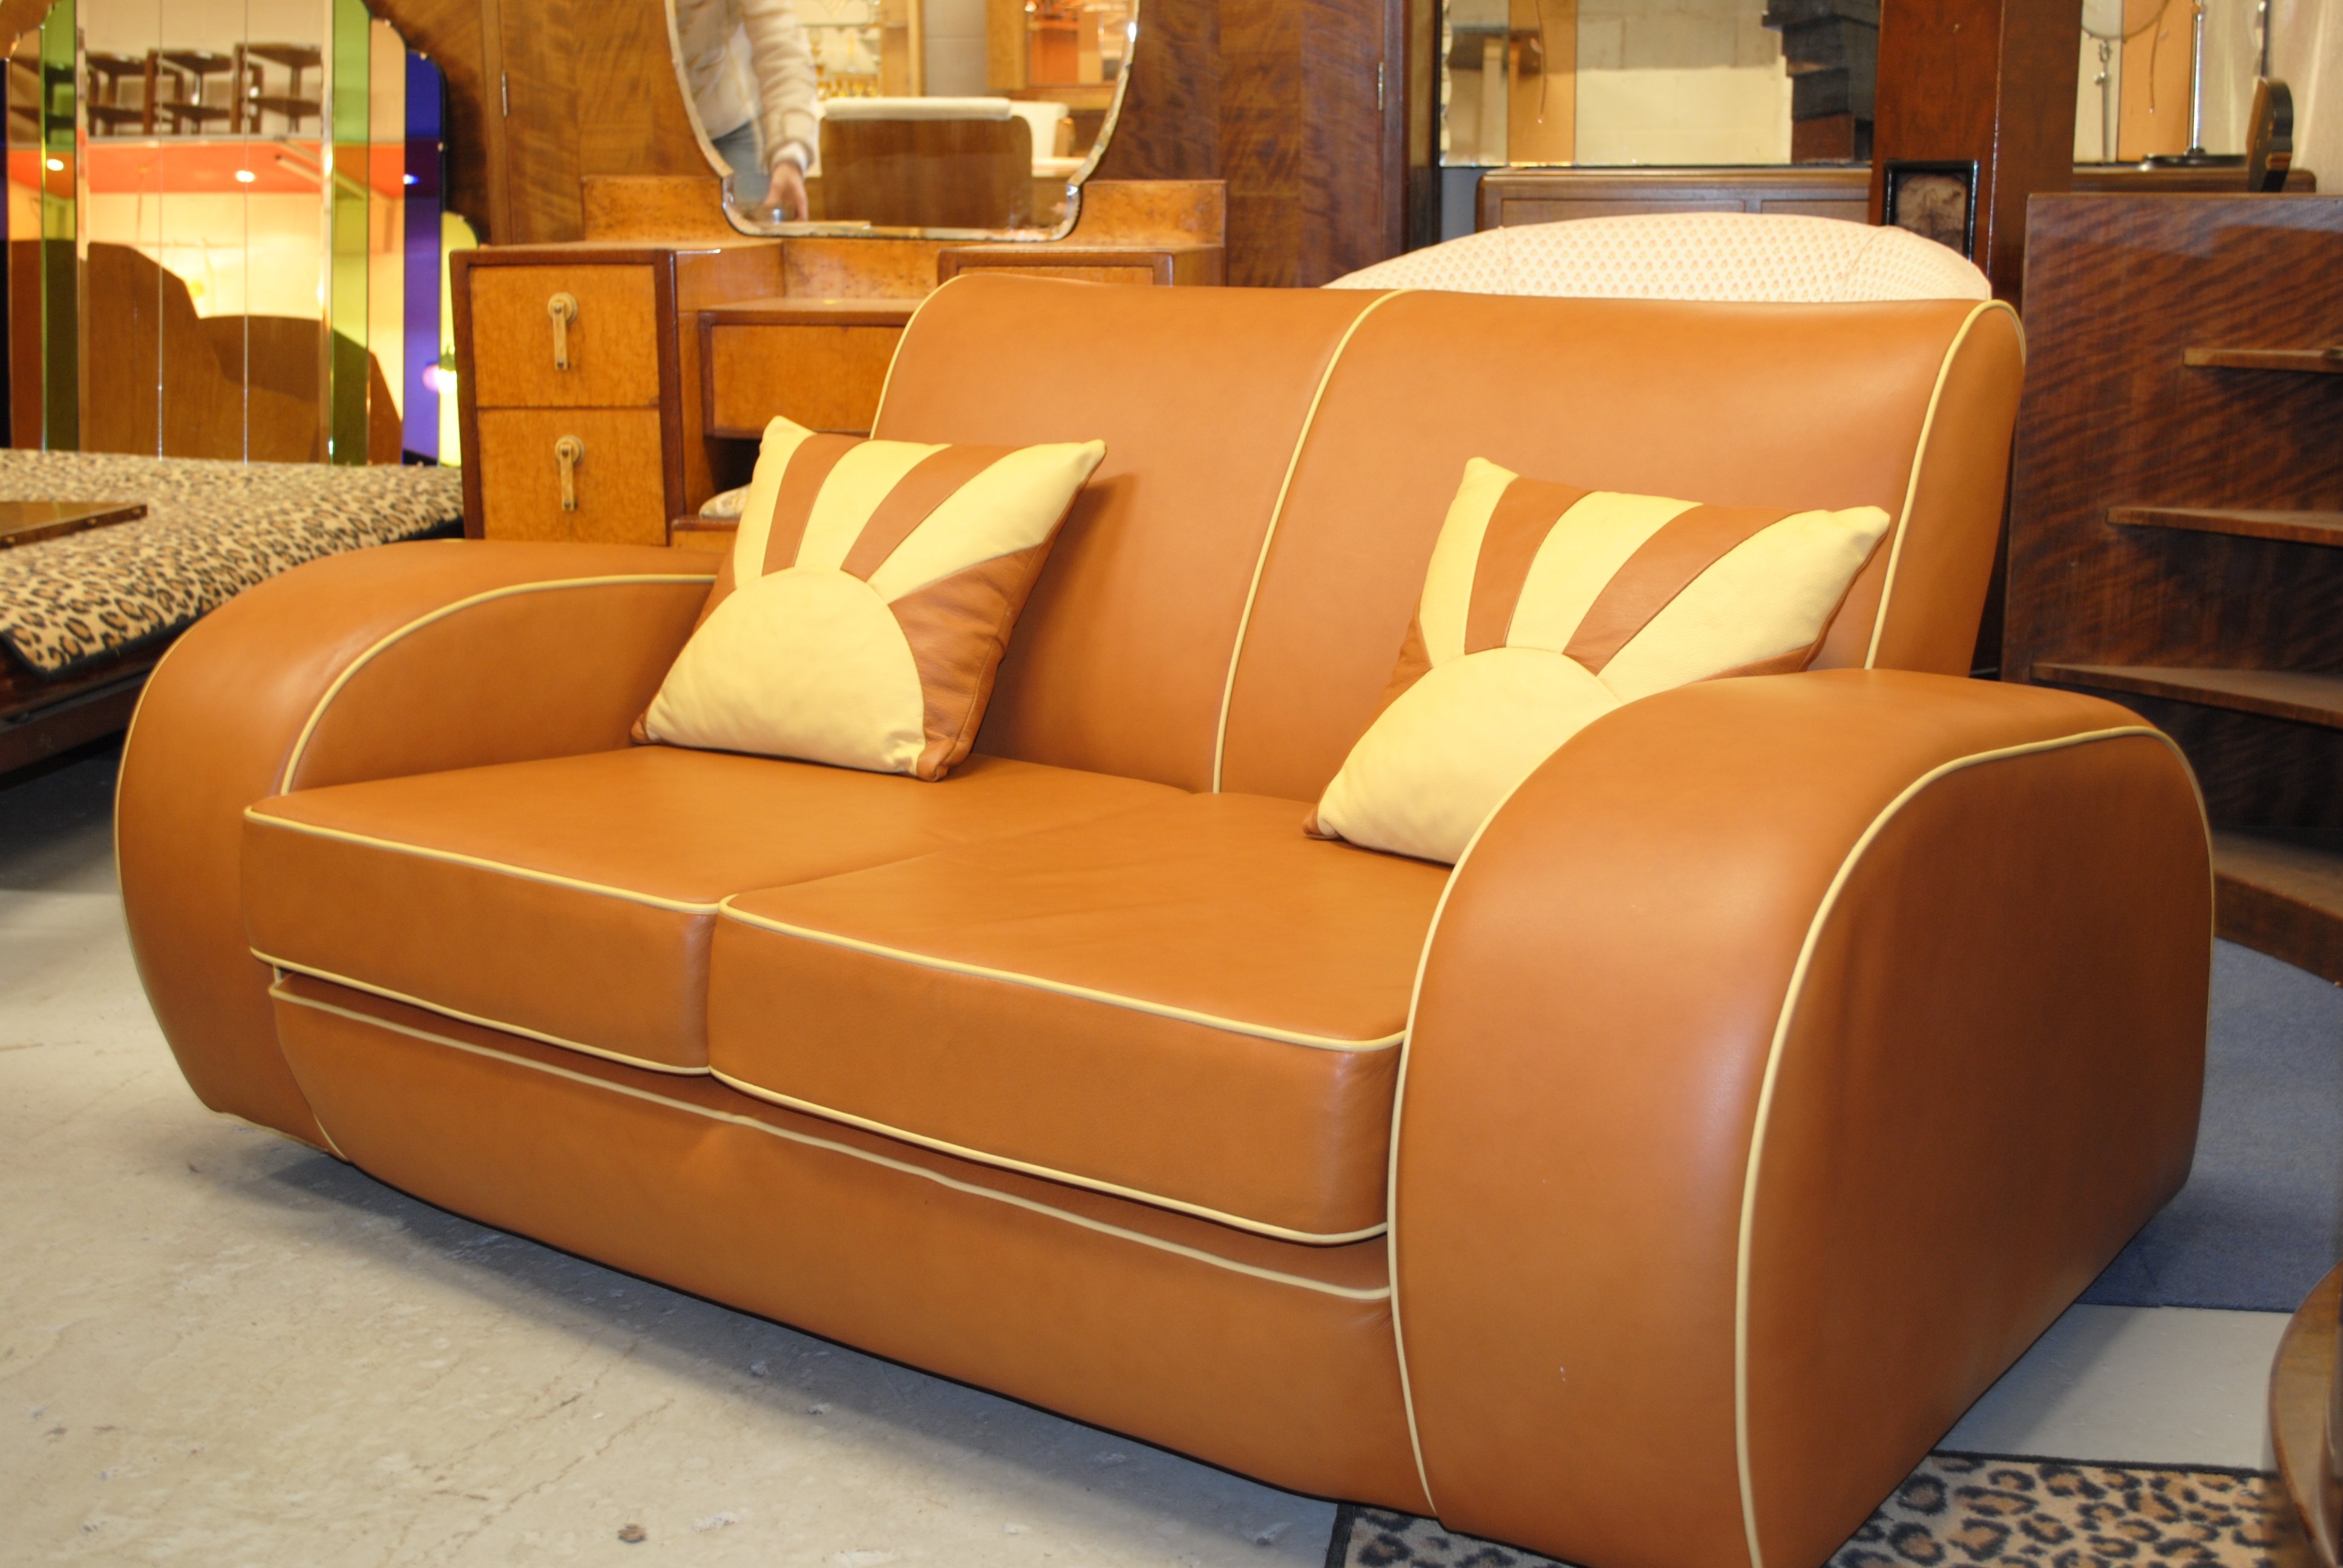 Art Deco Style Leather Sofa Sofa Menzilperde Inside Art Deco Sofa And Chairs (Image 10 of 15)